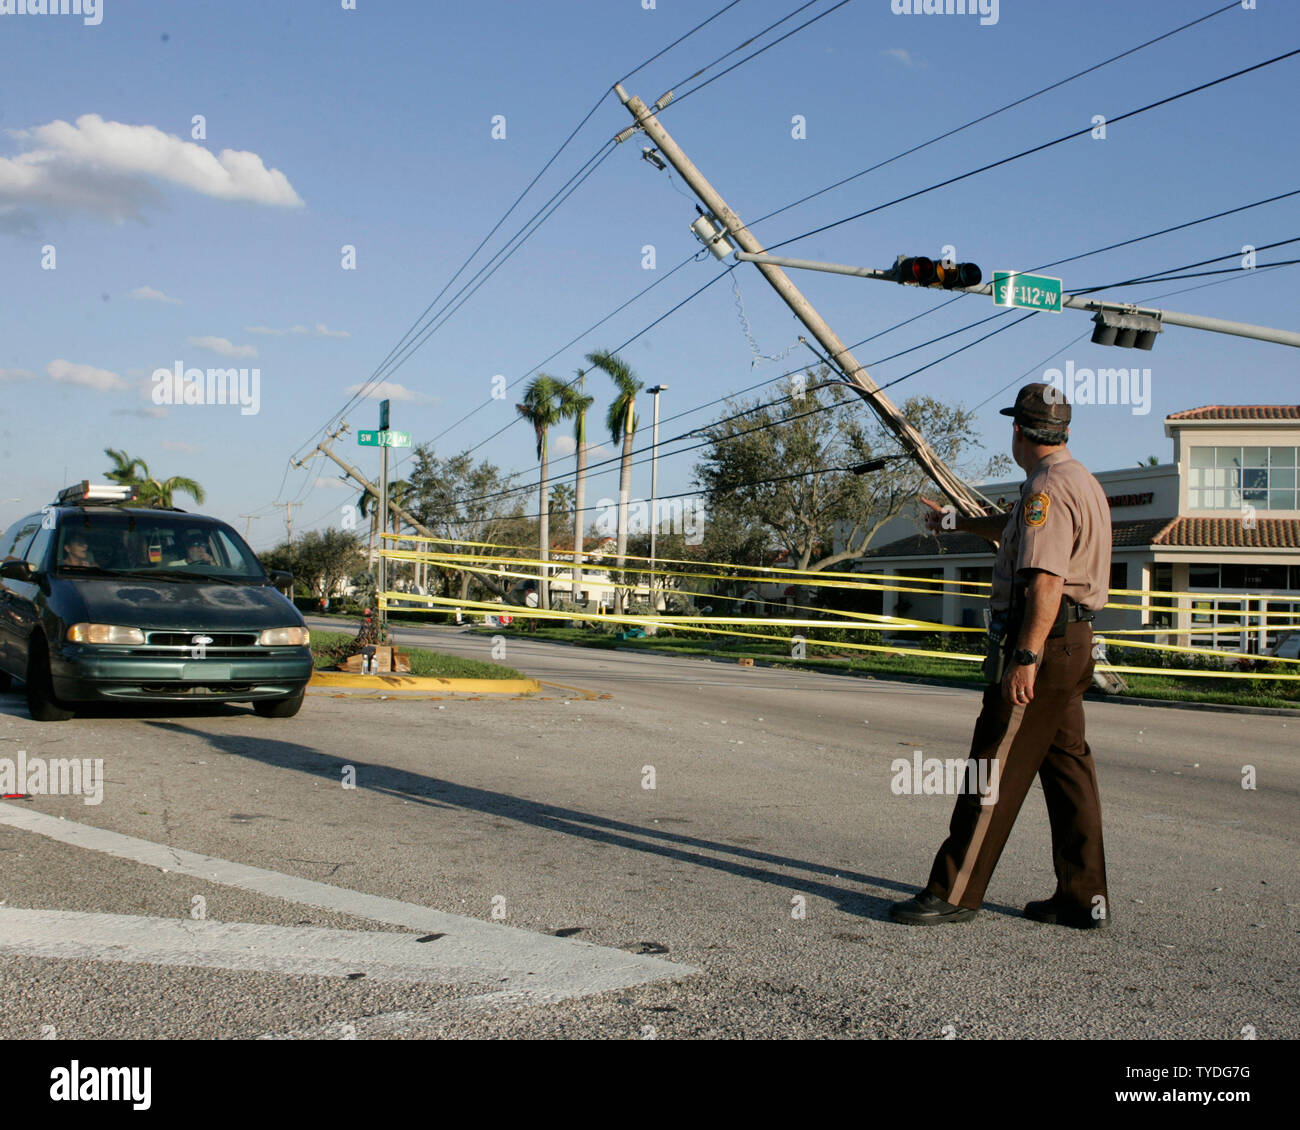 https www alamy com an officer of the miami dade police department directs traffic on kendall drive in south dade as broken power poles have one side of traffic closed in the wake of category 3 hurricane wilma in miami florida on october 25 2005 upi photomichael bush image257838996 html